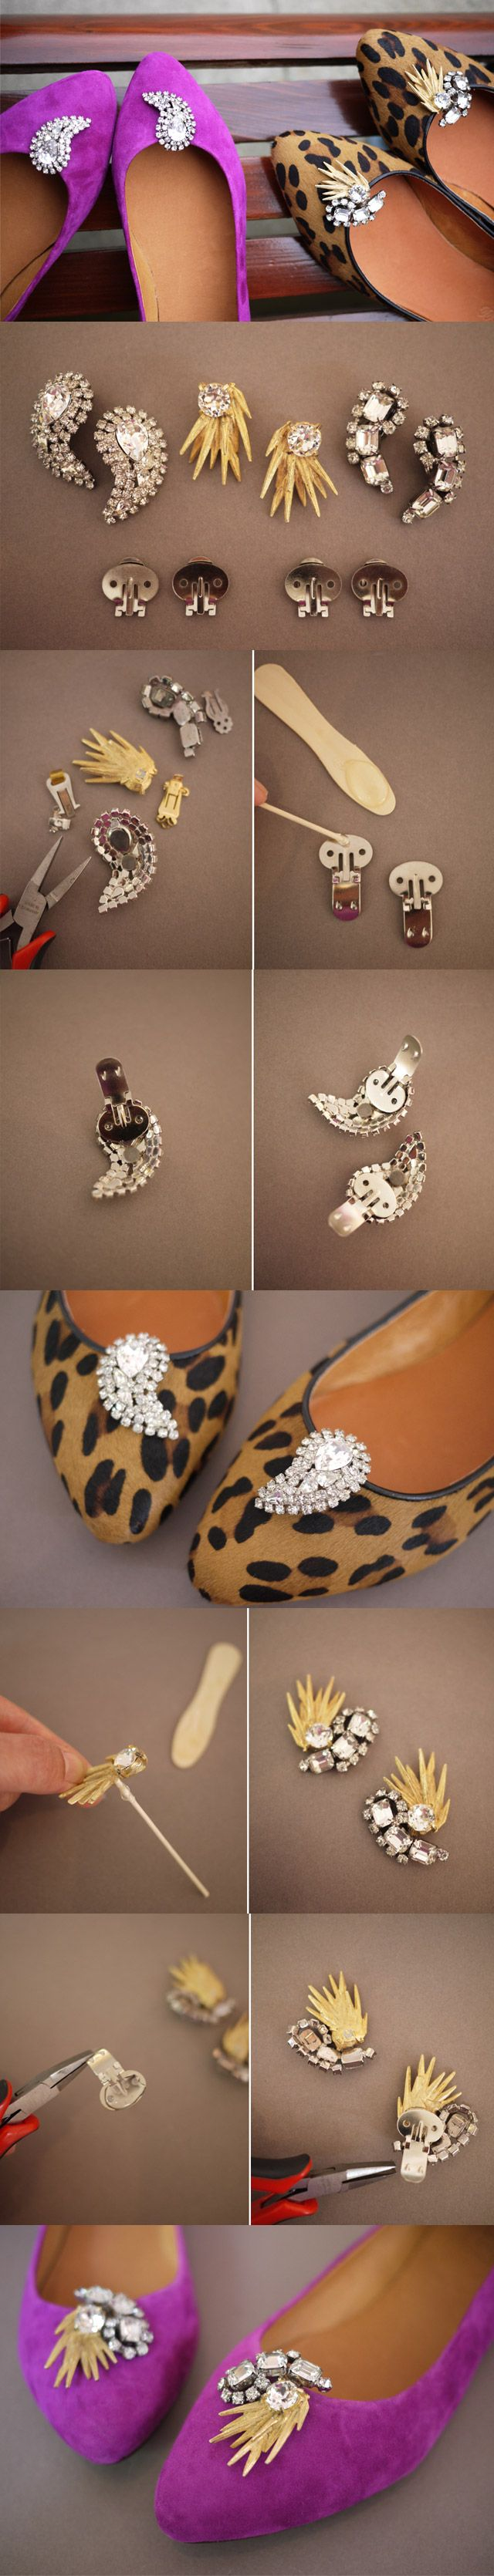 DIY: Shoe Clips Tutorial - such a cute idea!